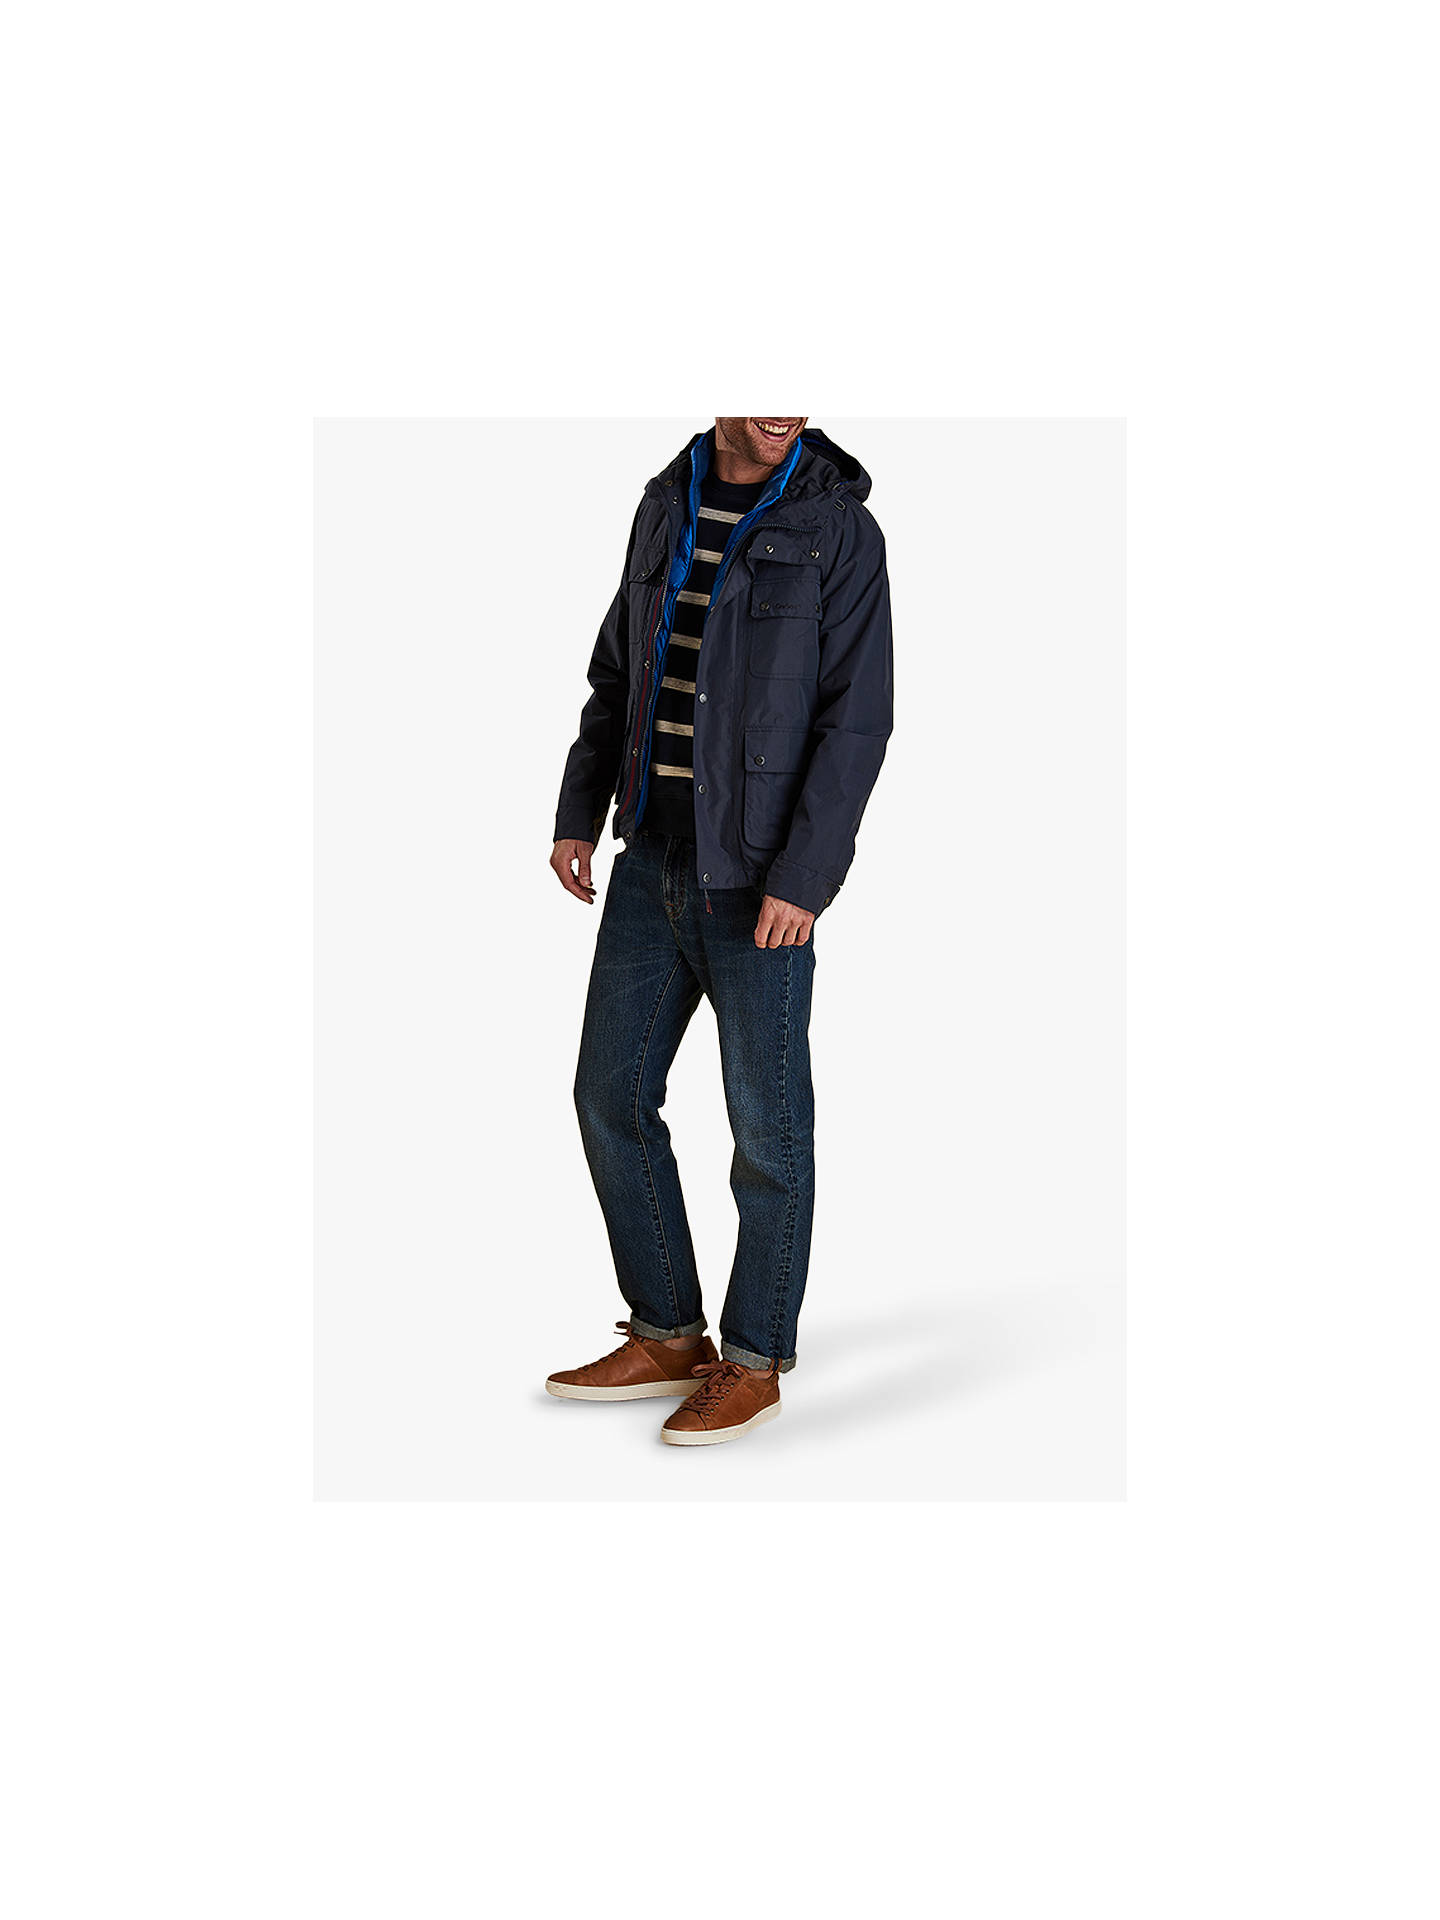 BuyBarbour Hallow Jacket, Navy, S Online at johnlewis.com